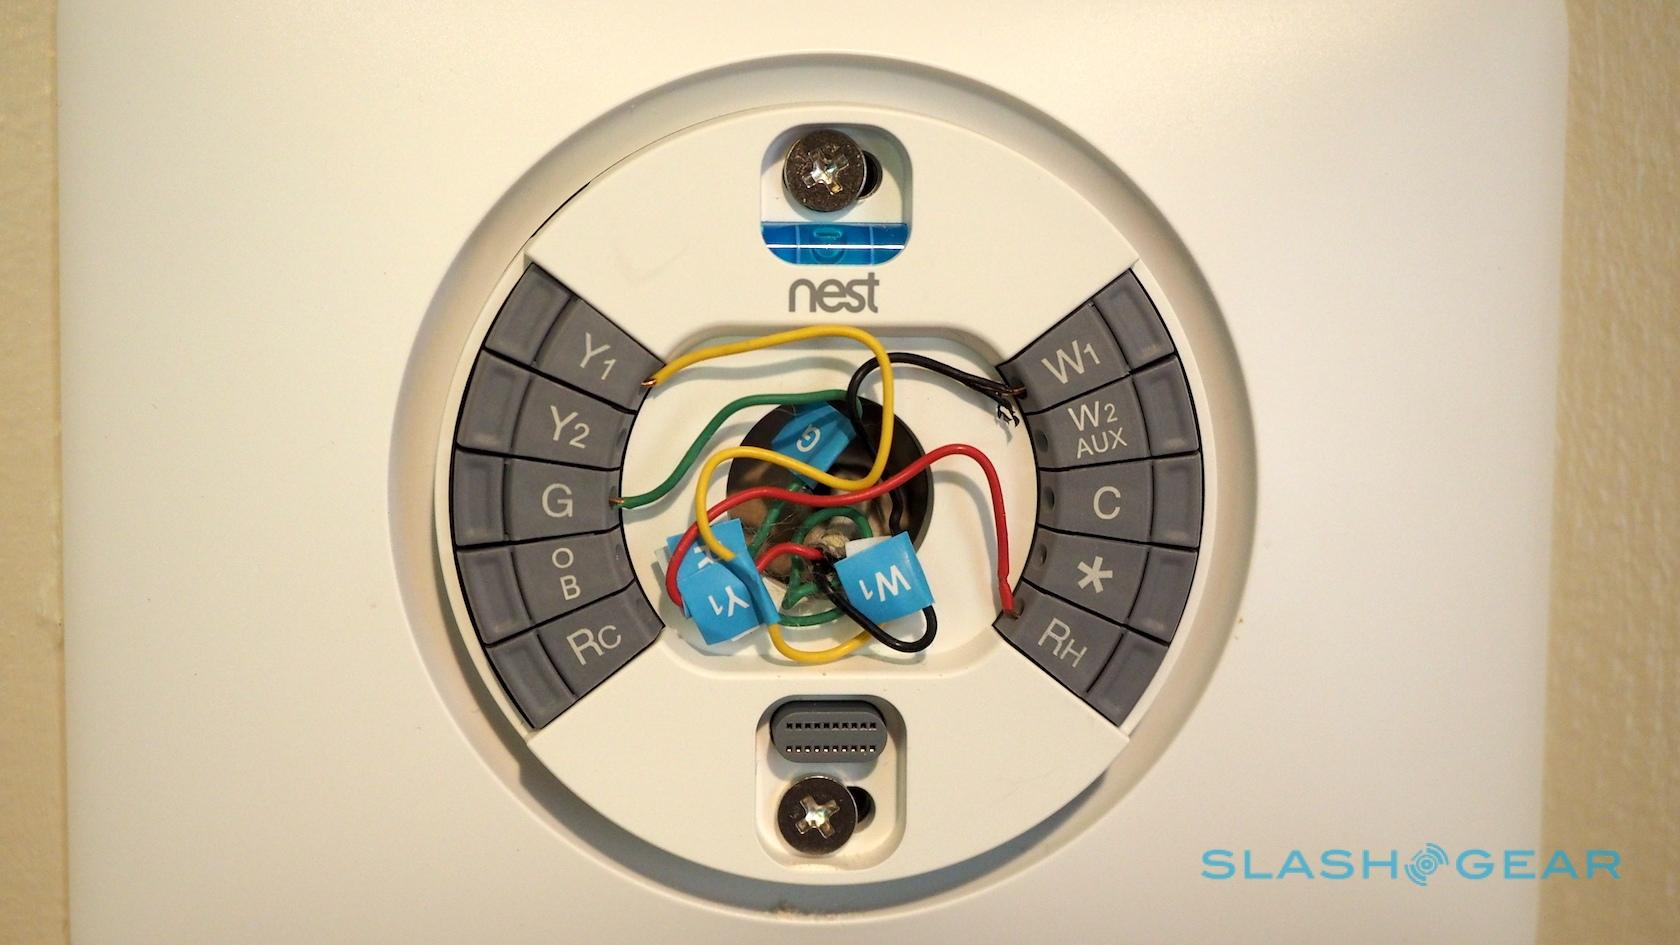 Nest Thermostat Wiring Independent - Just Another Wiring Diagram Blog • - Nest Thermostat Heat Pump Wiring Diagram